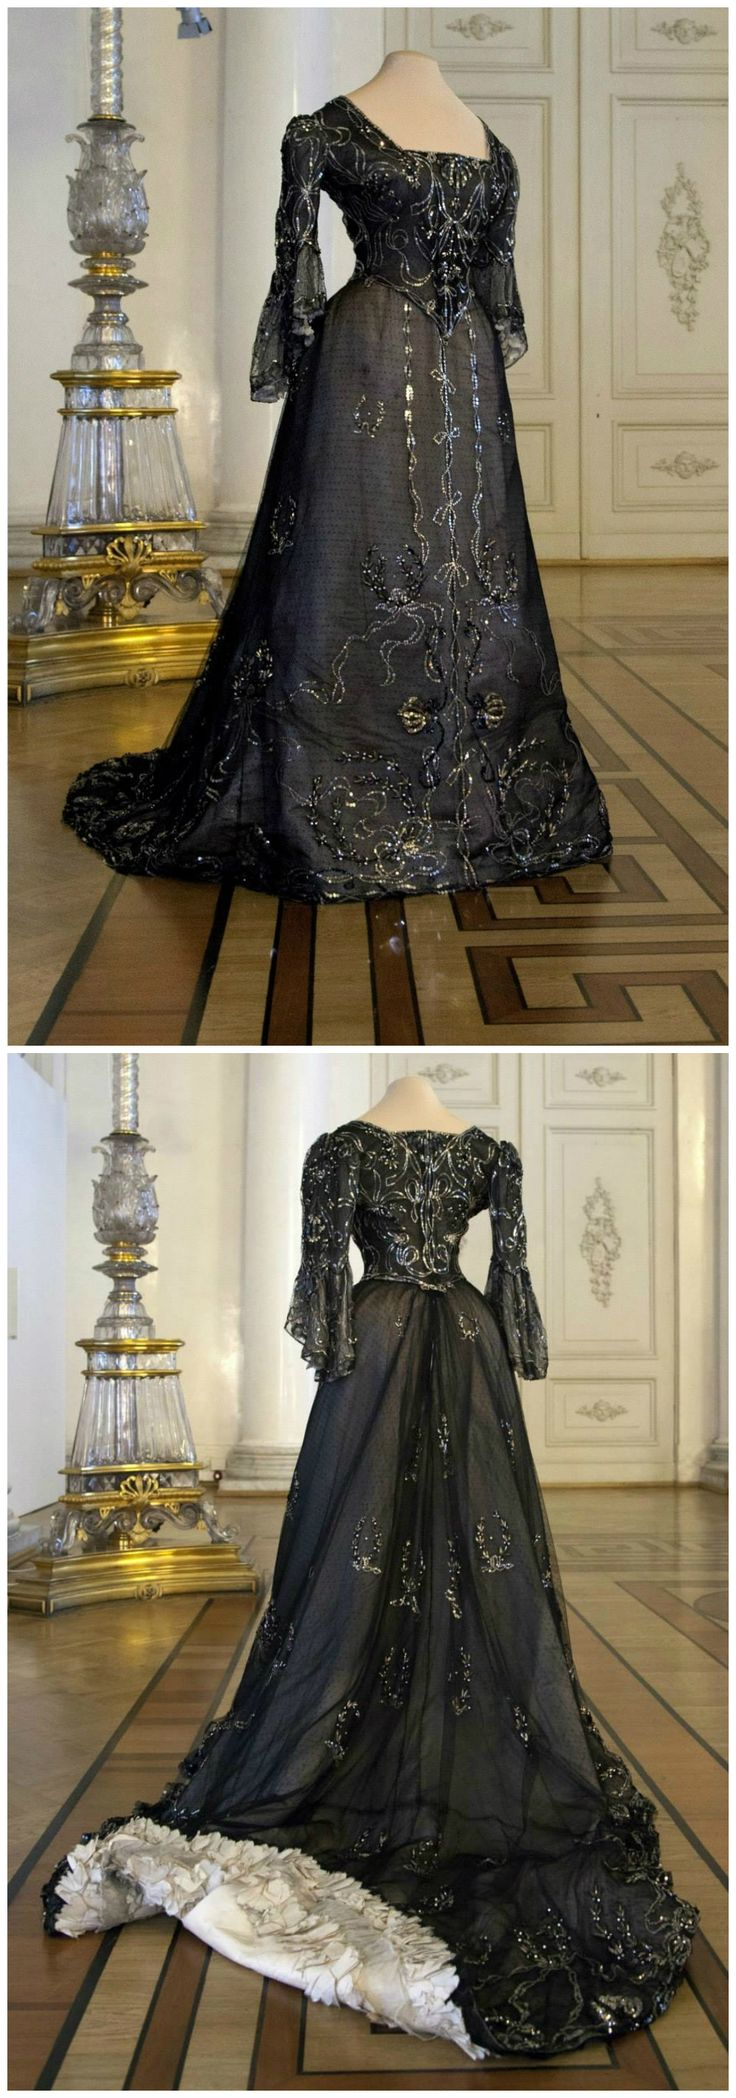 Louis XVI style black ball dress. Belonged to Empress Alexandra Feodorovna. Designed by A. Brisac, St. Petersburg. Circa 1903. Photos via the State Hermitage Museum Official Page on Facebook.